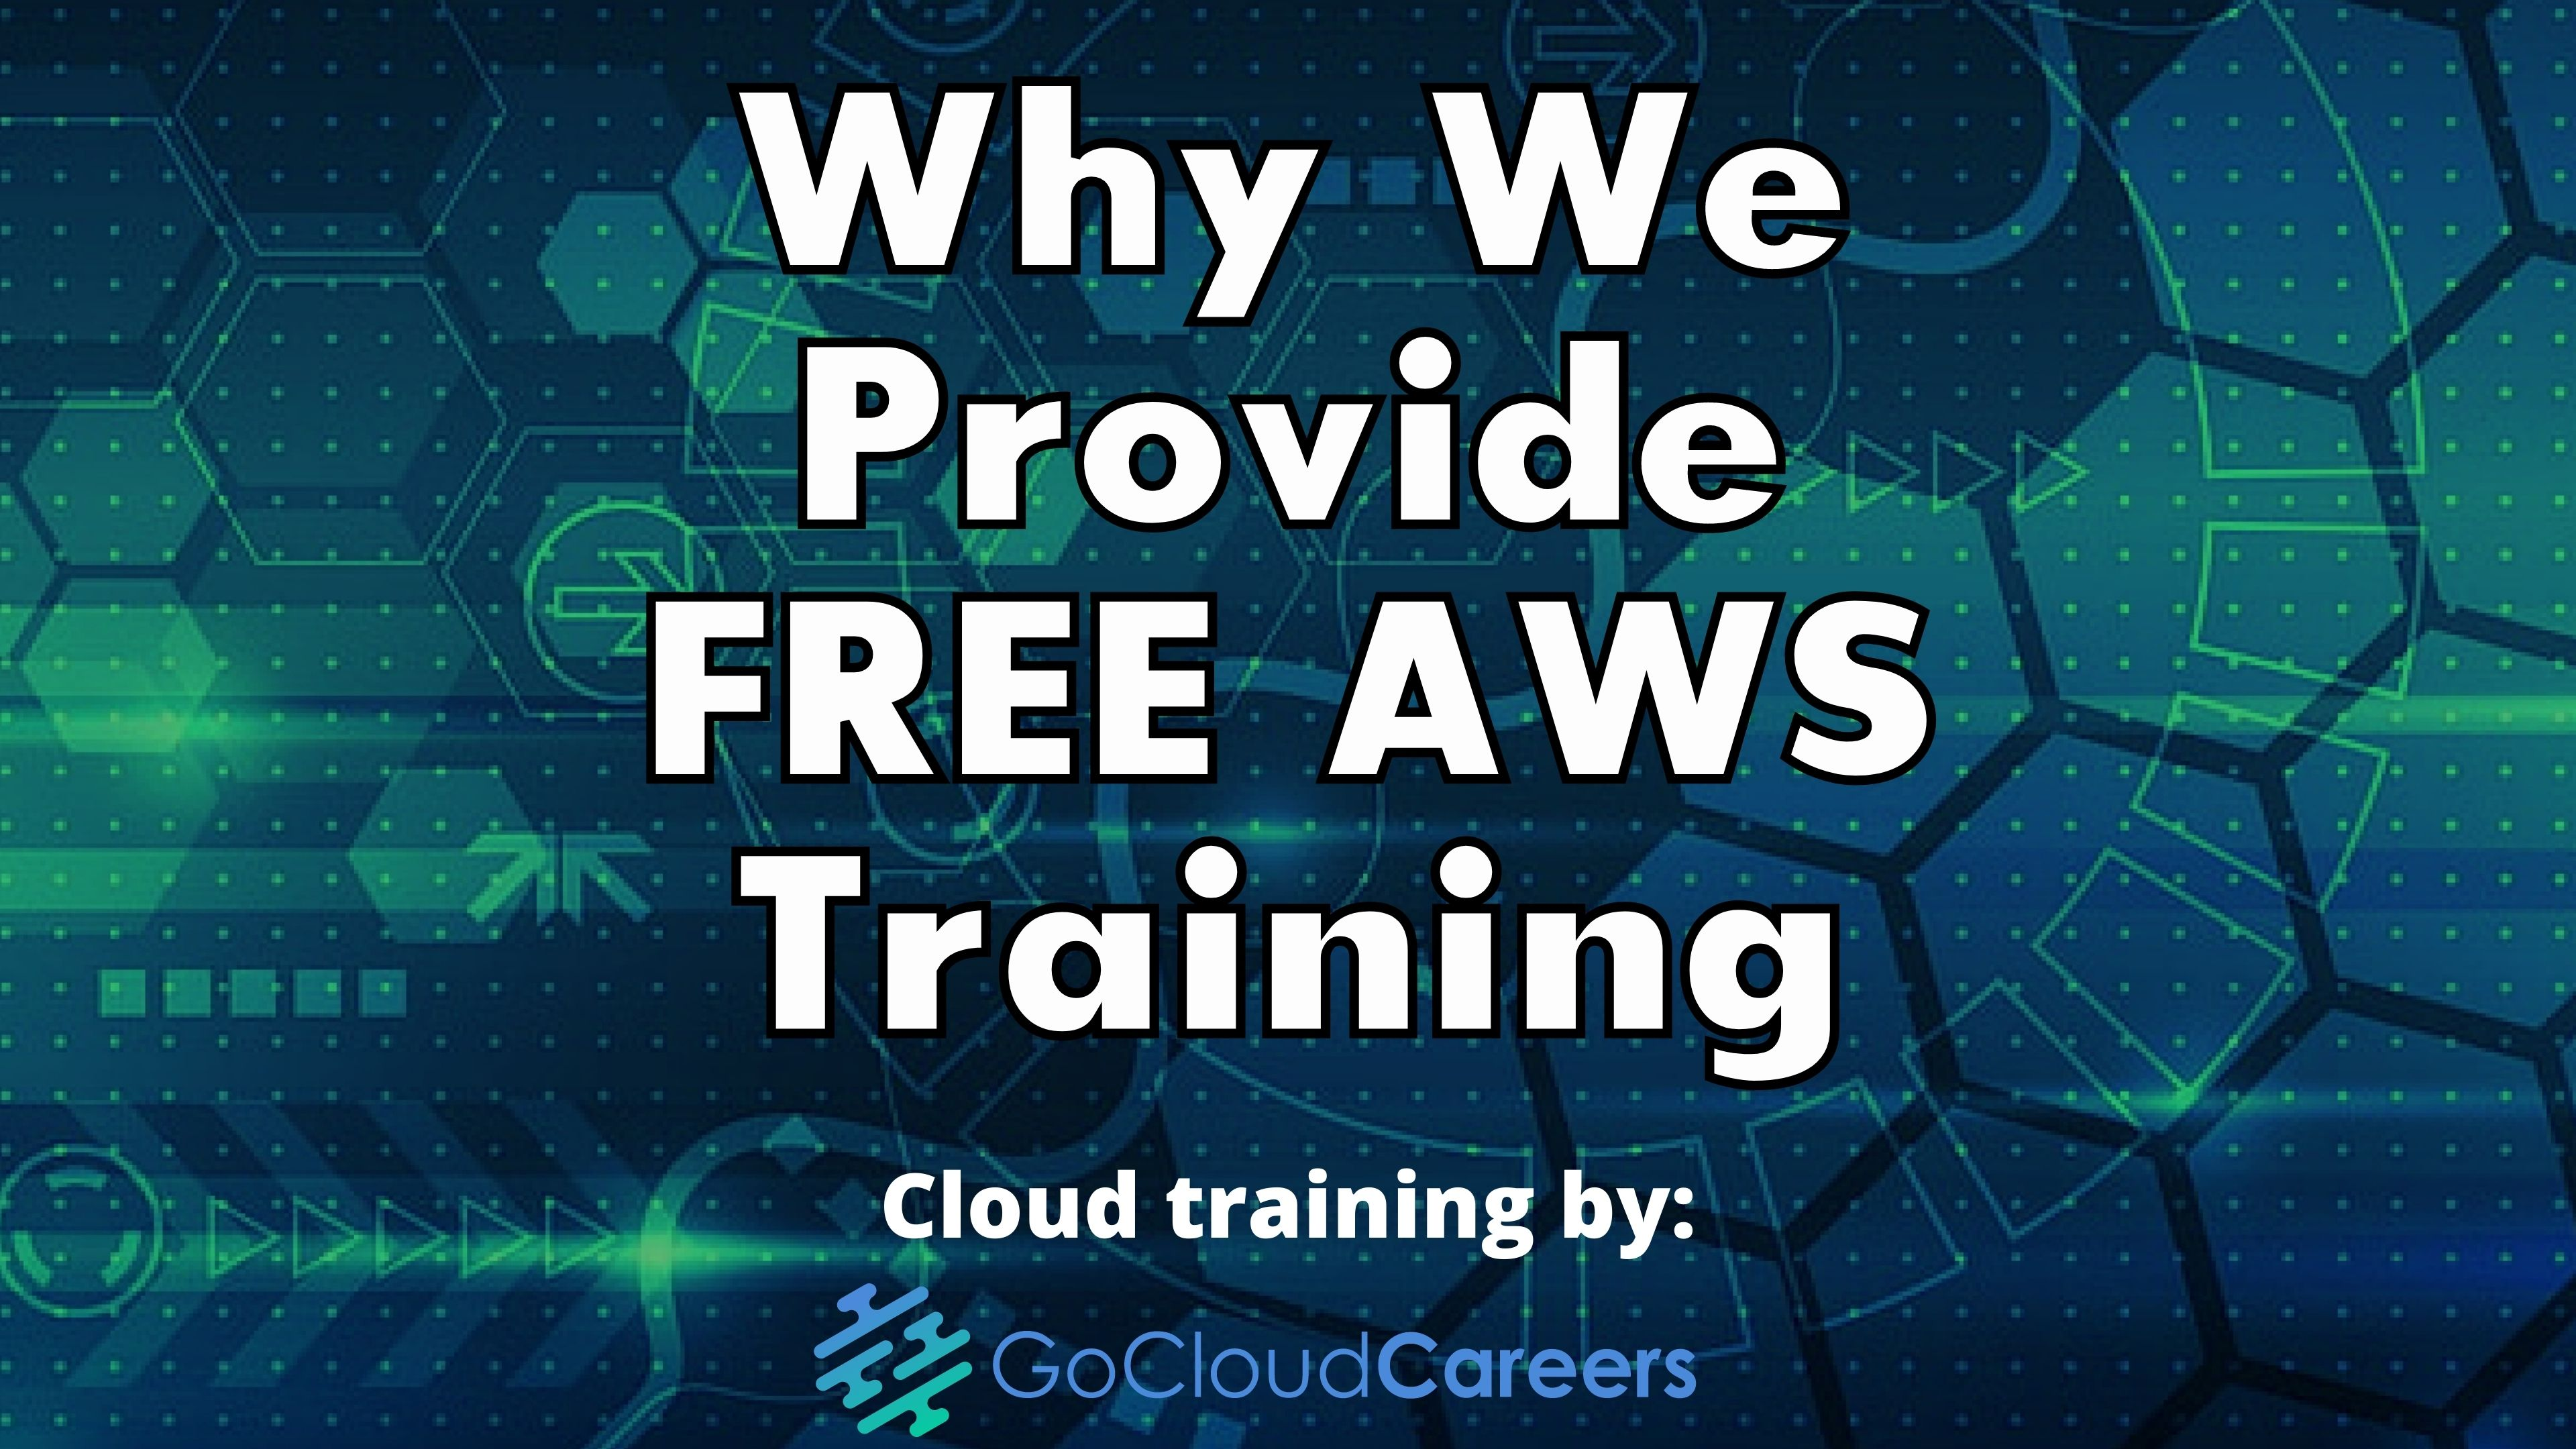 Why We Provide FREE AWS Training